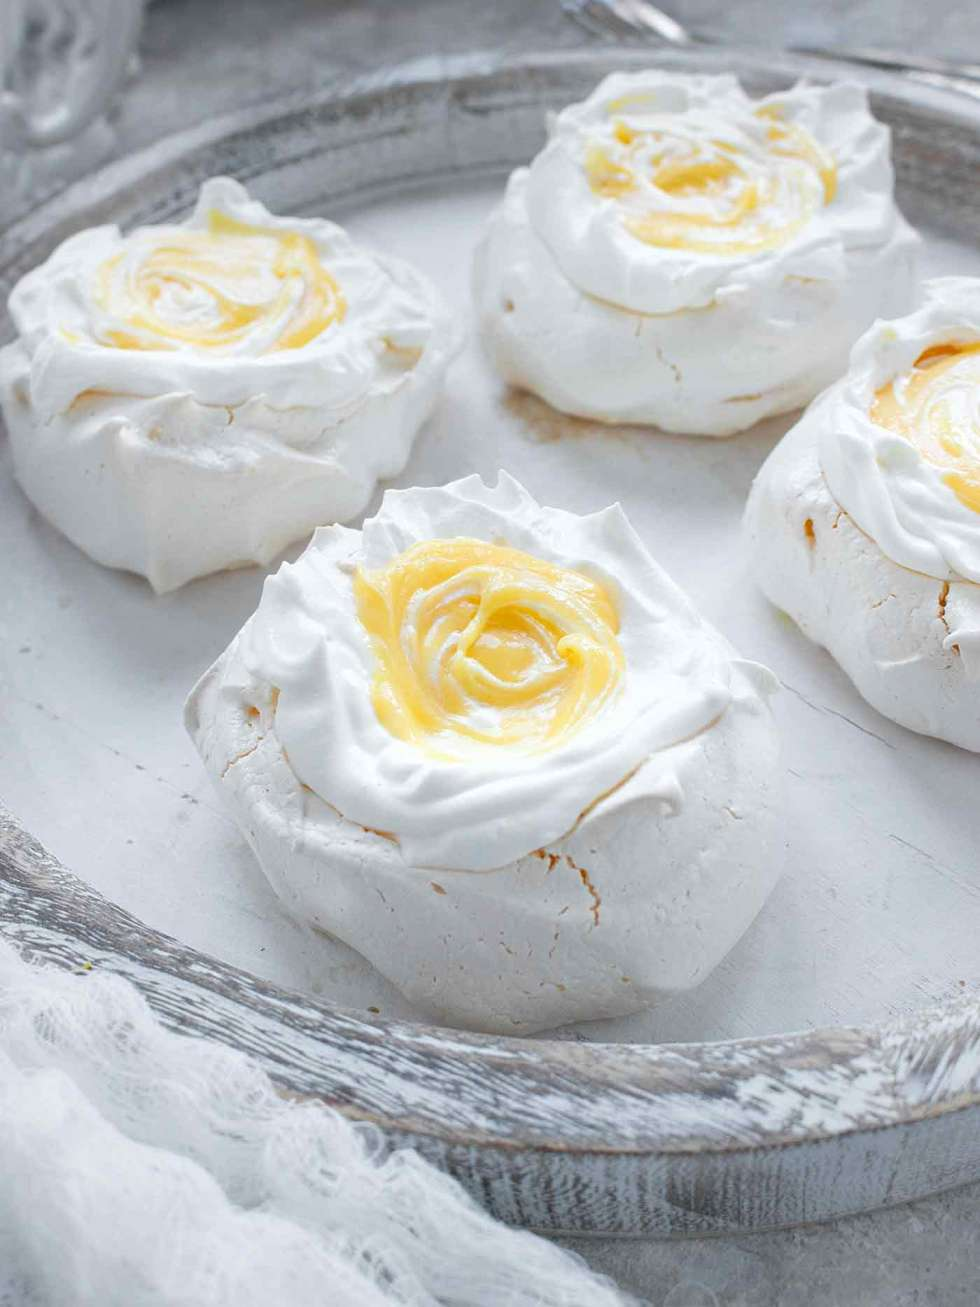 Mini pavlova with tangerine curd on a white serving board